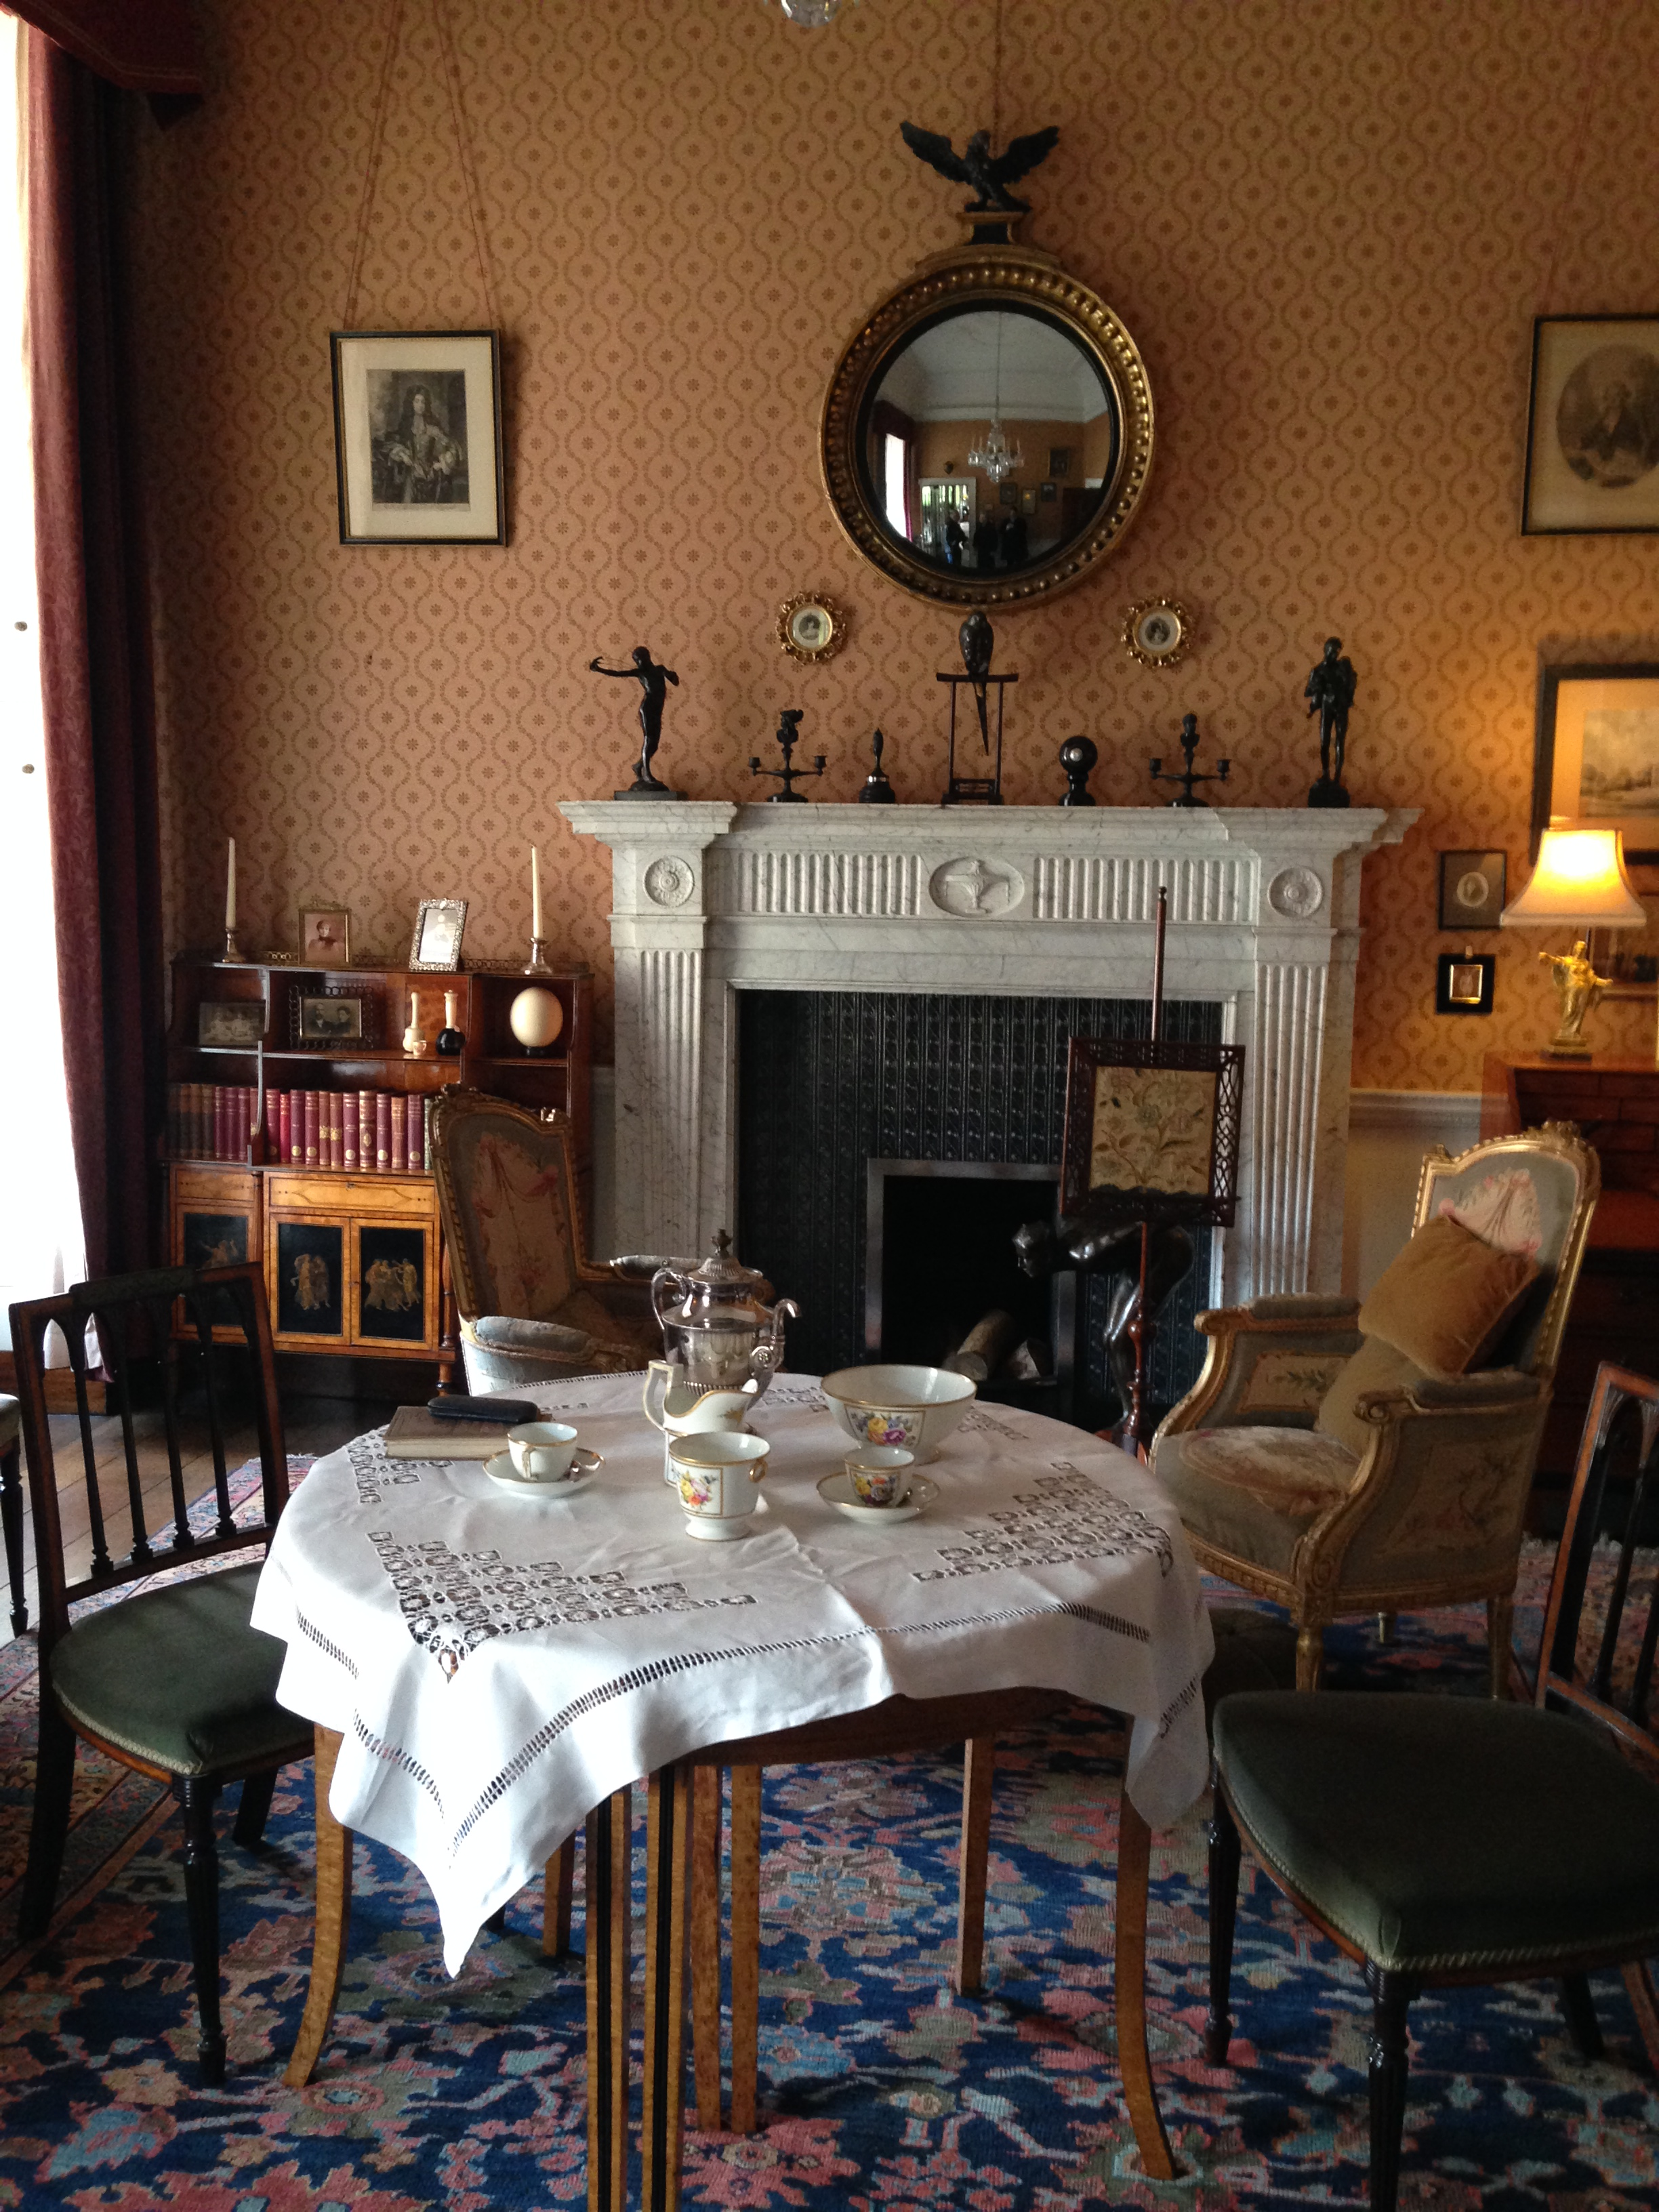 Lady Cawley's room